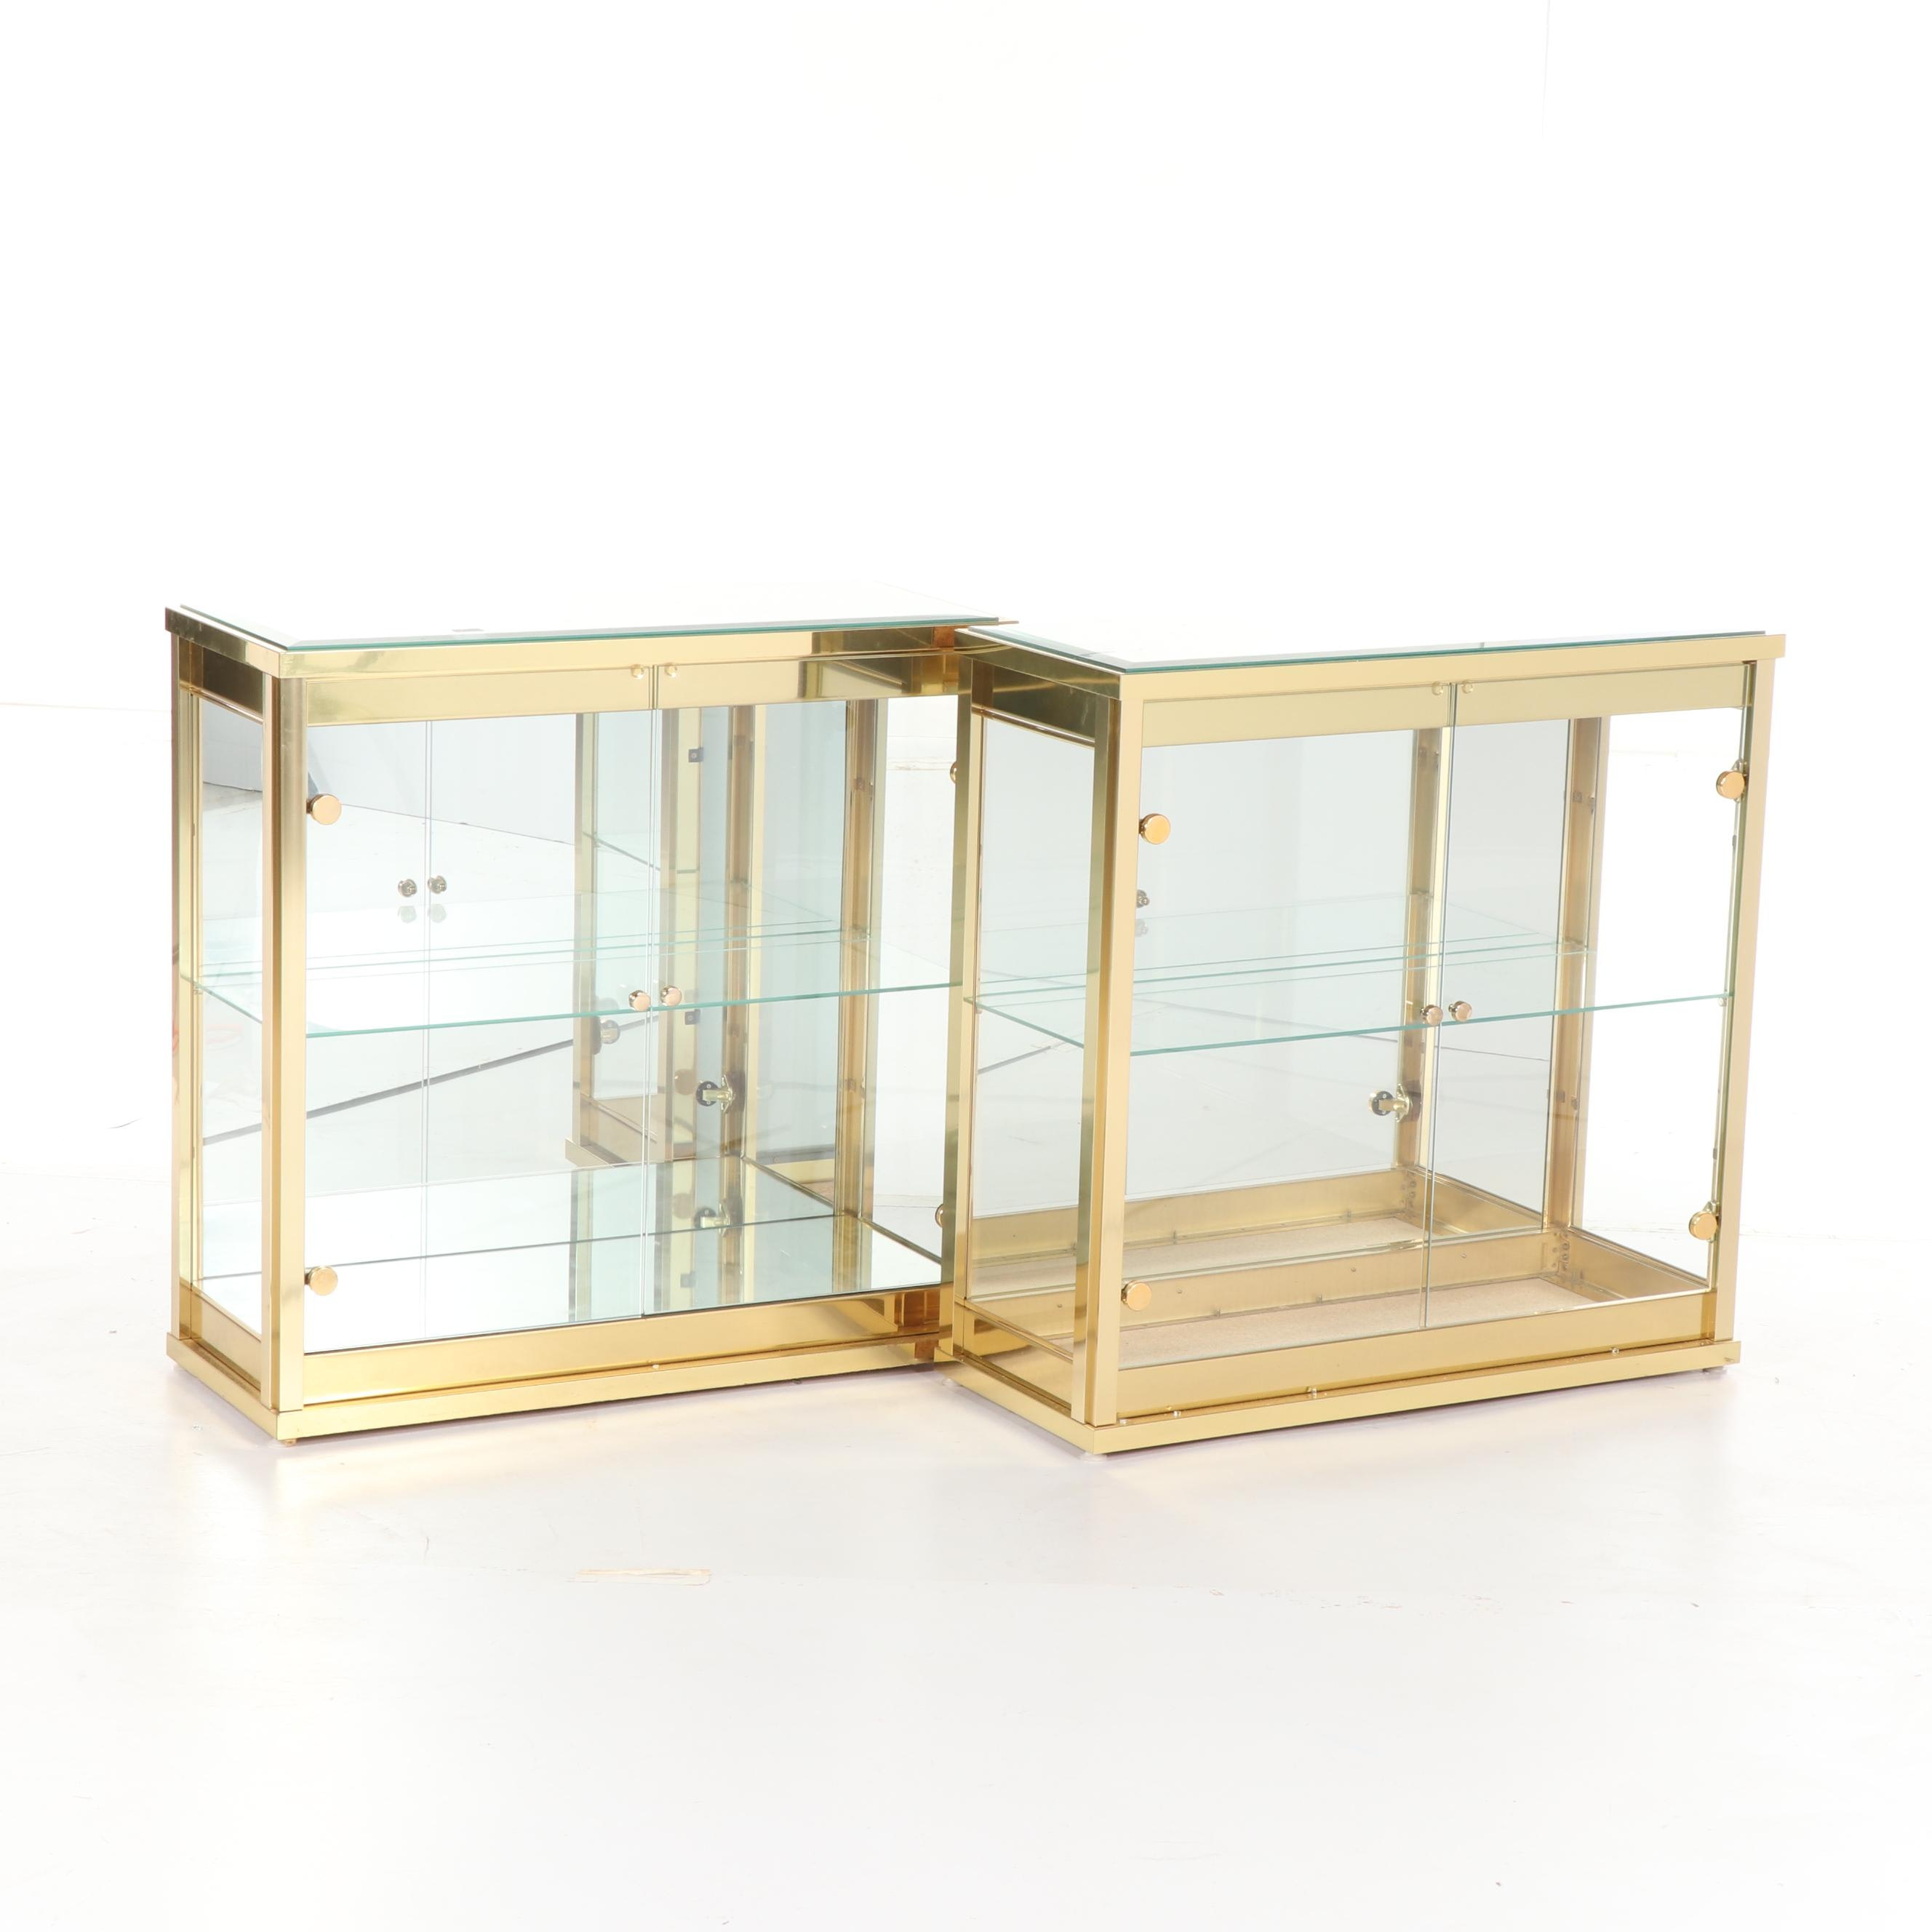 Brass and Glass Display Cabinets, Late 20th Century